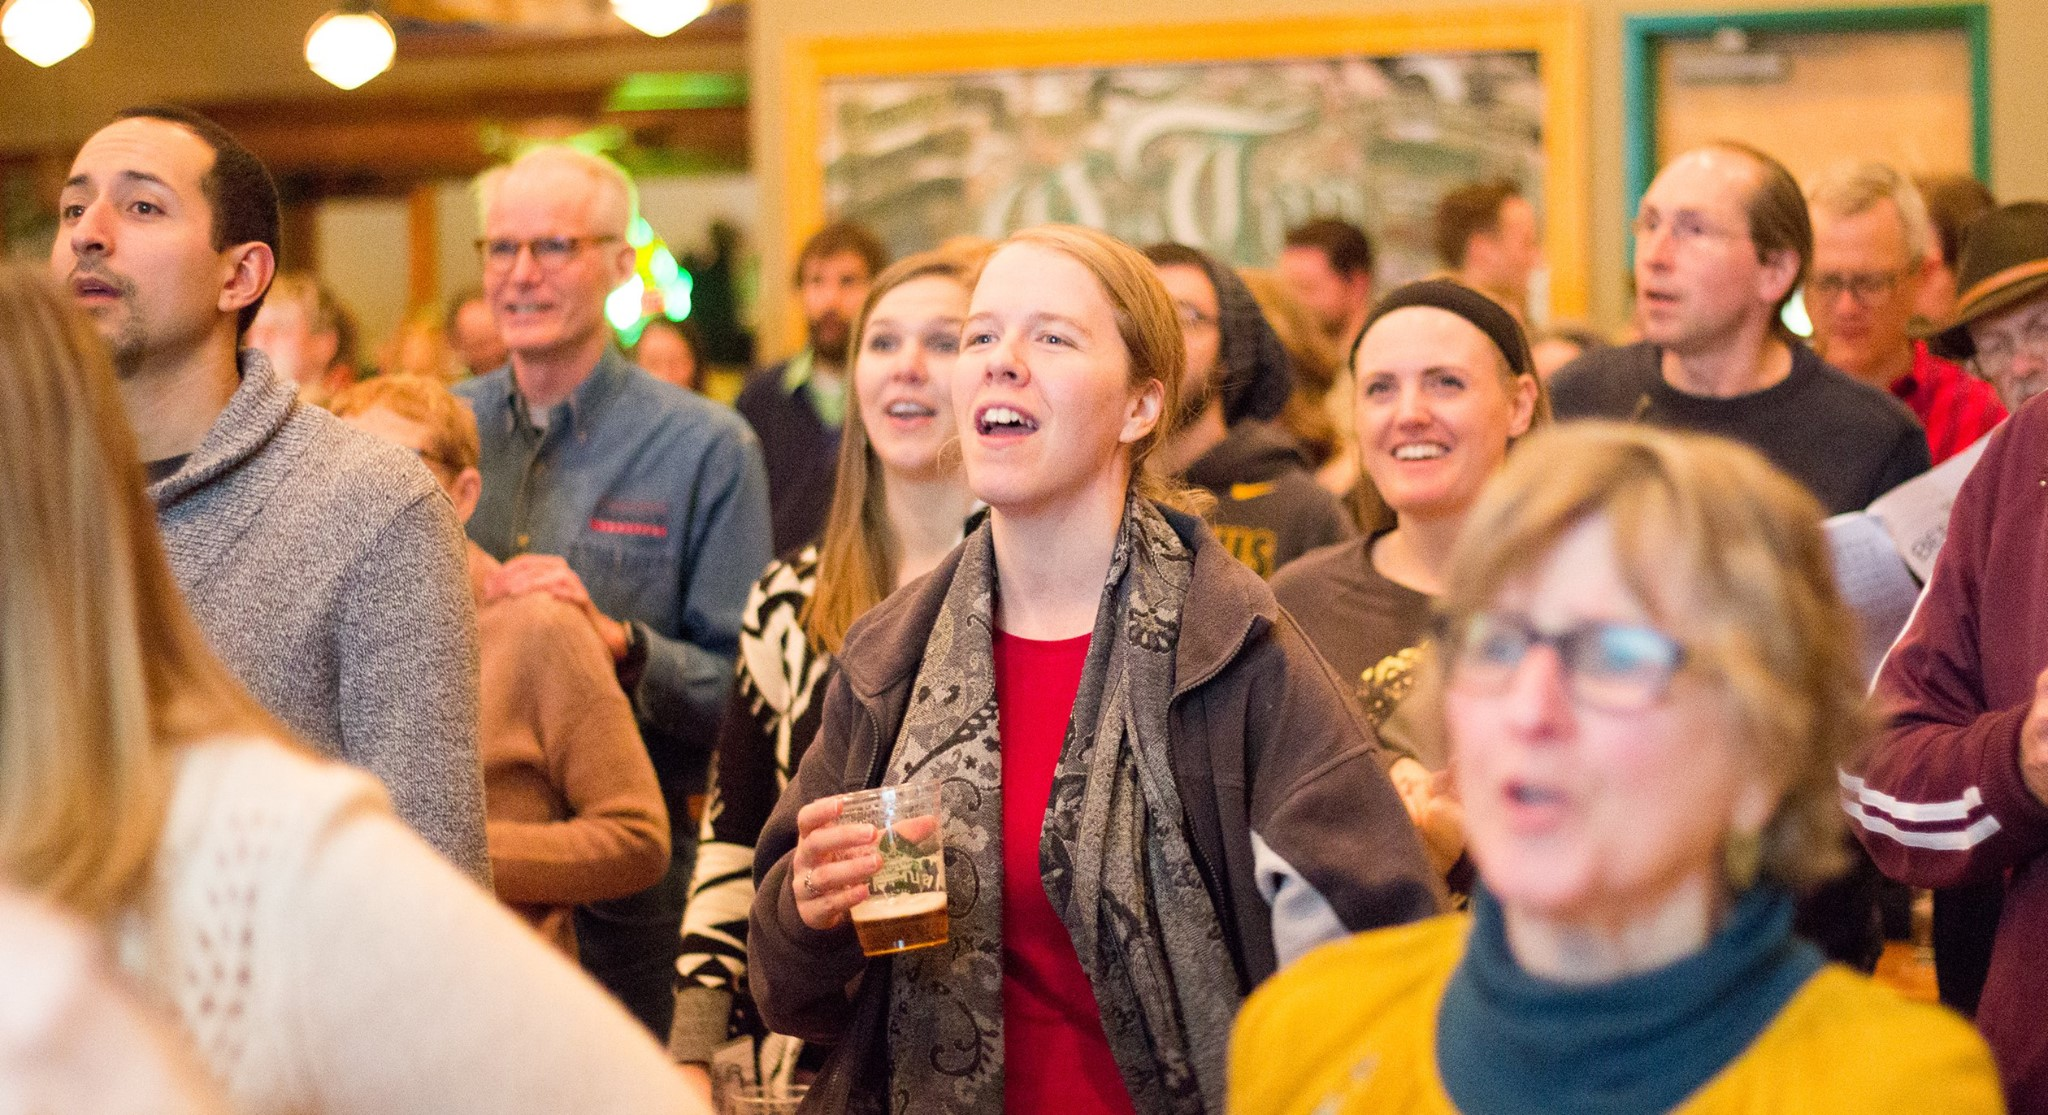 Beer Choir Twin Cities events draws singers, young and old // Photo via Beer Choir Twin Cities' Facebook